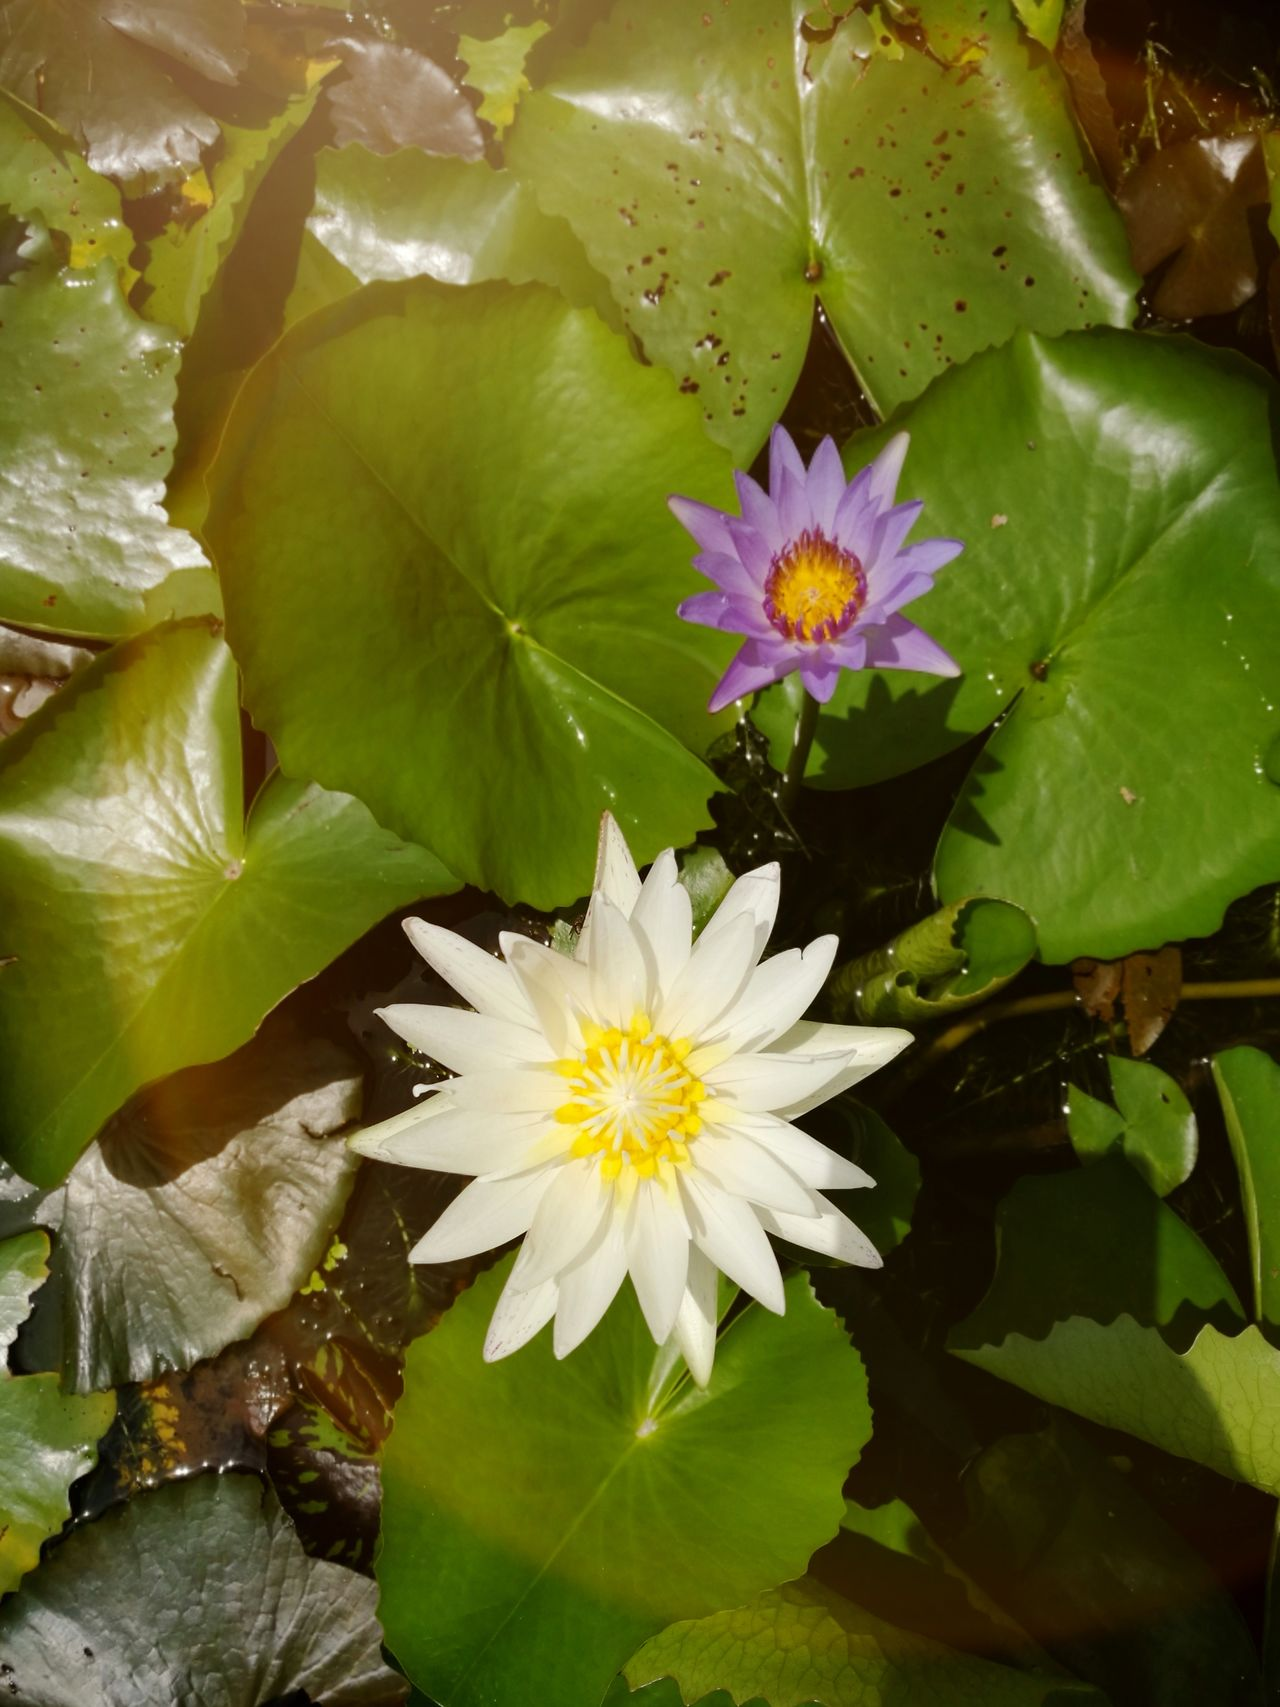 Flower Freshness Petal Nature Beauty In Nature Fragility Flower Head Leaf Water Lily Close-up Plant No People Blossom Springtime Growth Floating On Water Green Color Stamen Lotus Water Lily Outdoors